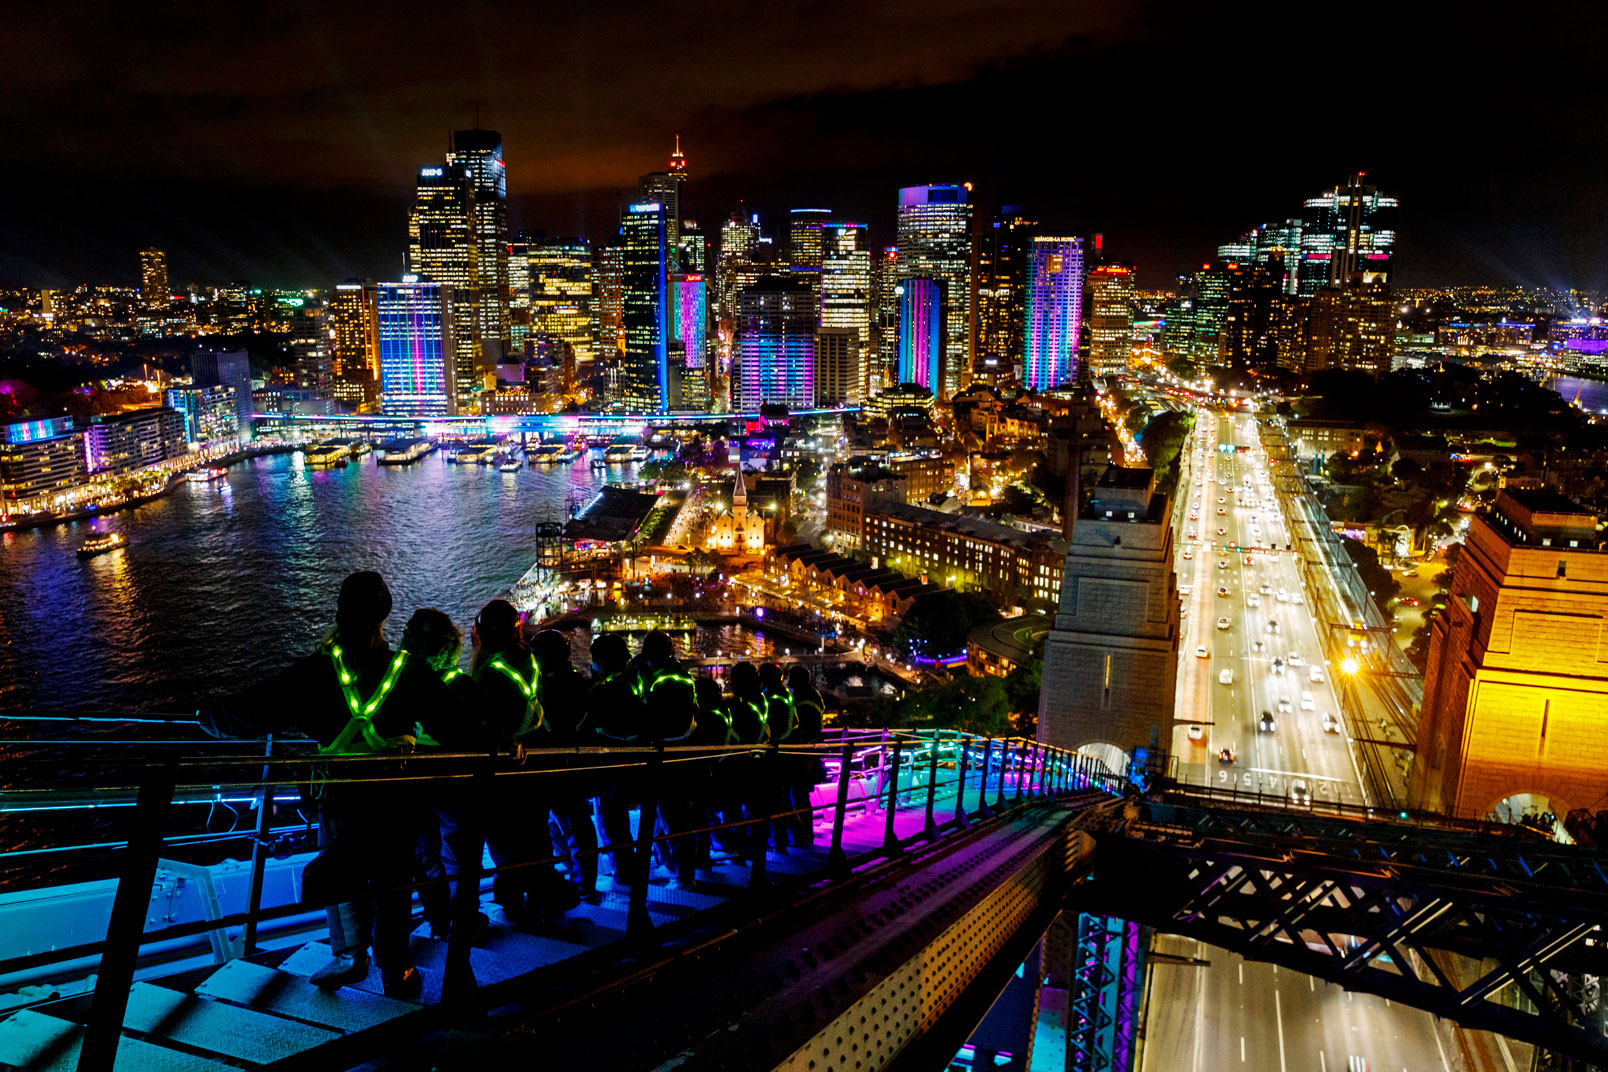 VividSydney2017_BridgeClimb_Destination-NSW_James-Horan-00330100